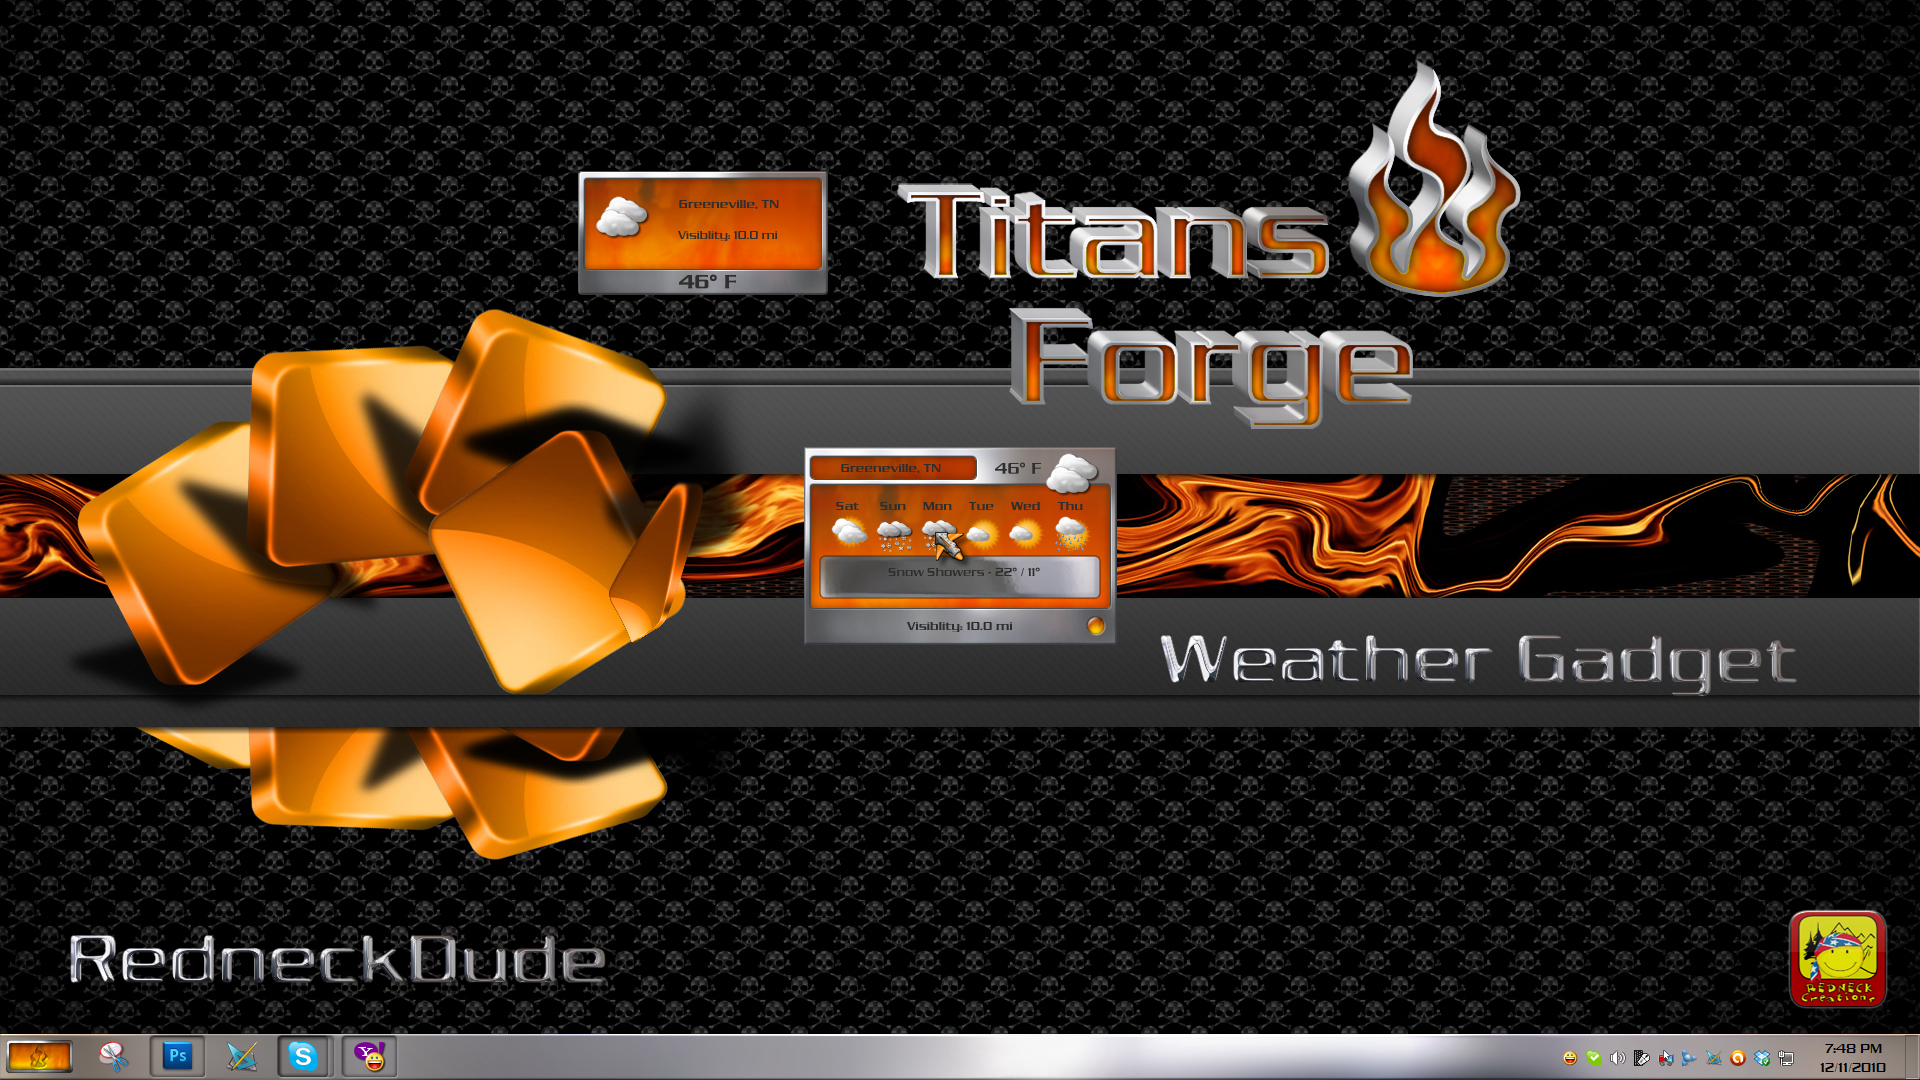 Titan's Forge Weather Gadget